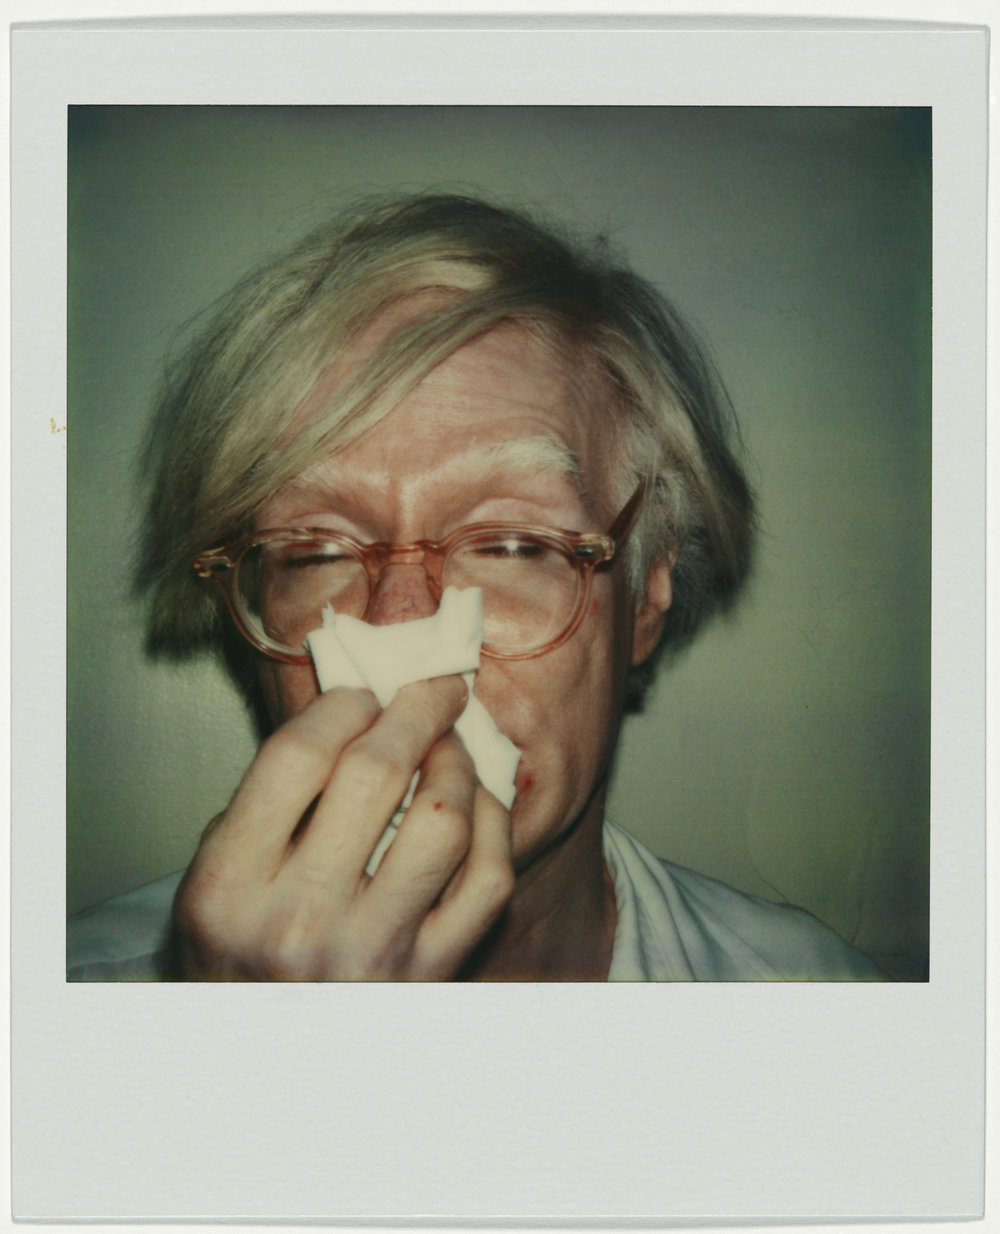 Andy Warhol Andy Sneezing 1978   Polaroid SX-70   © The Andy Warhol Foundation for the Visual Arts Inc. / VBK Wien 2017, Courtesy Fotosammlung OstLicht